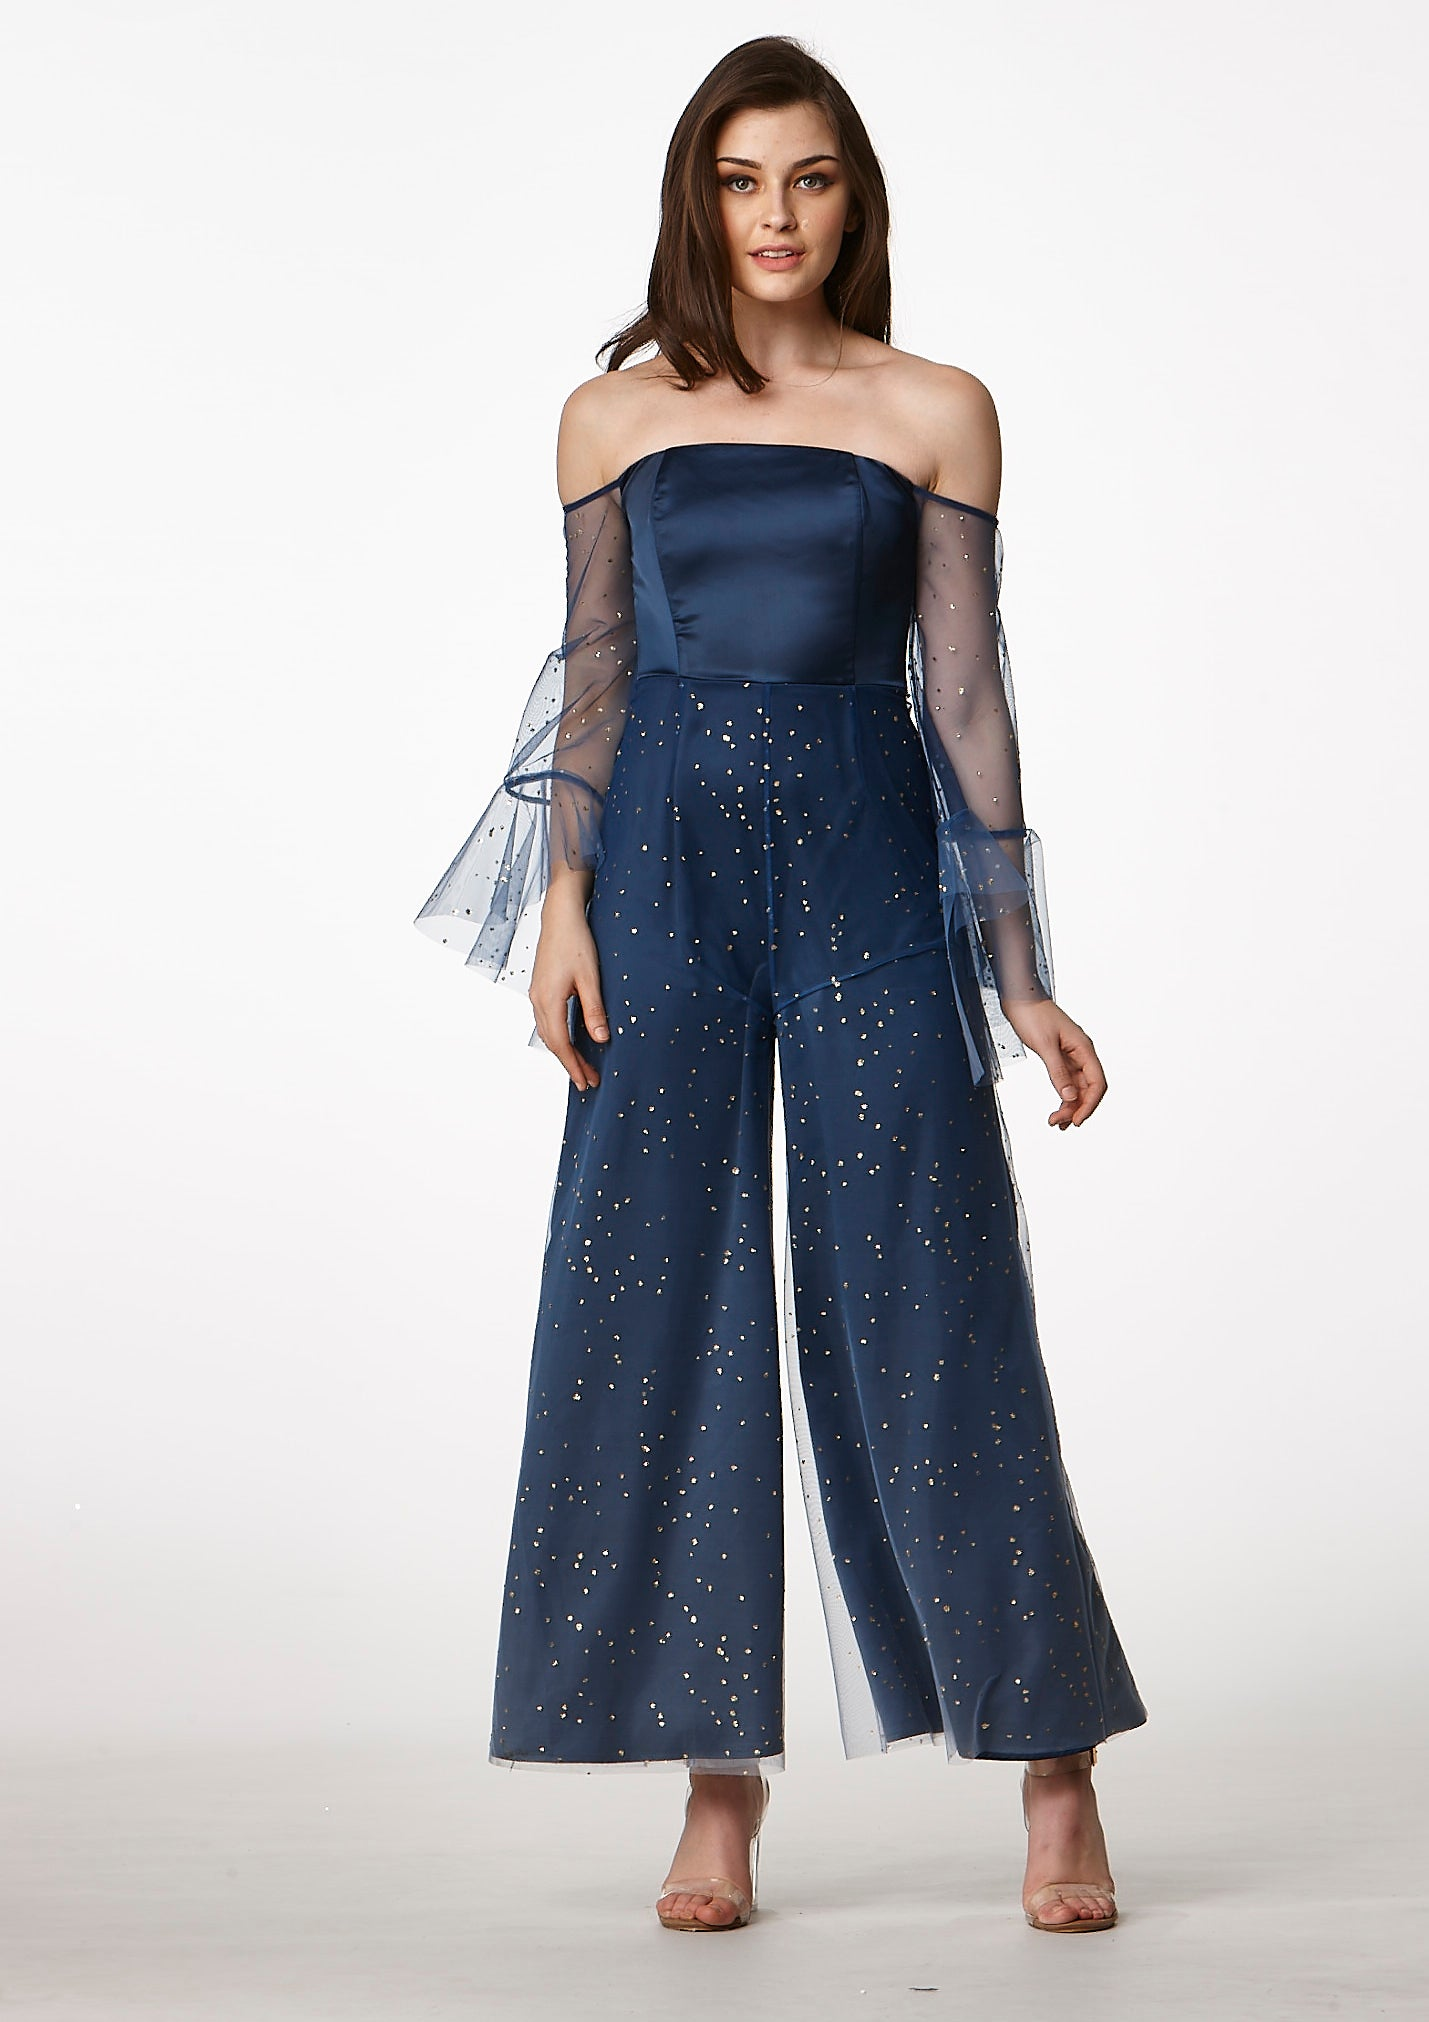 MOS Ombre Jumpsuit (Navy) - Moxie